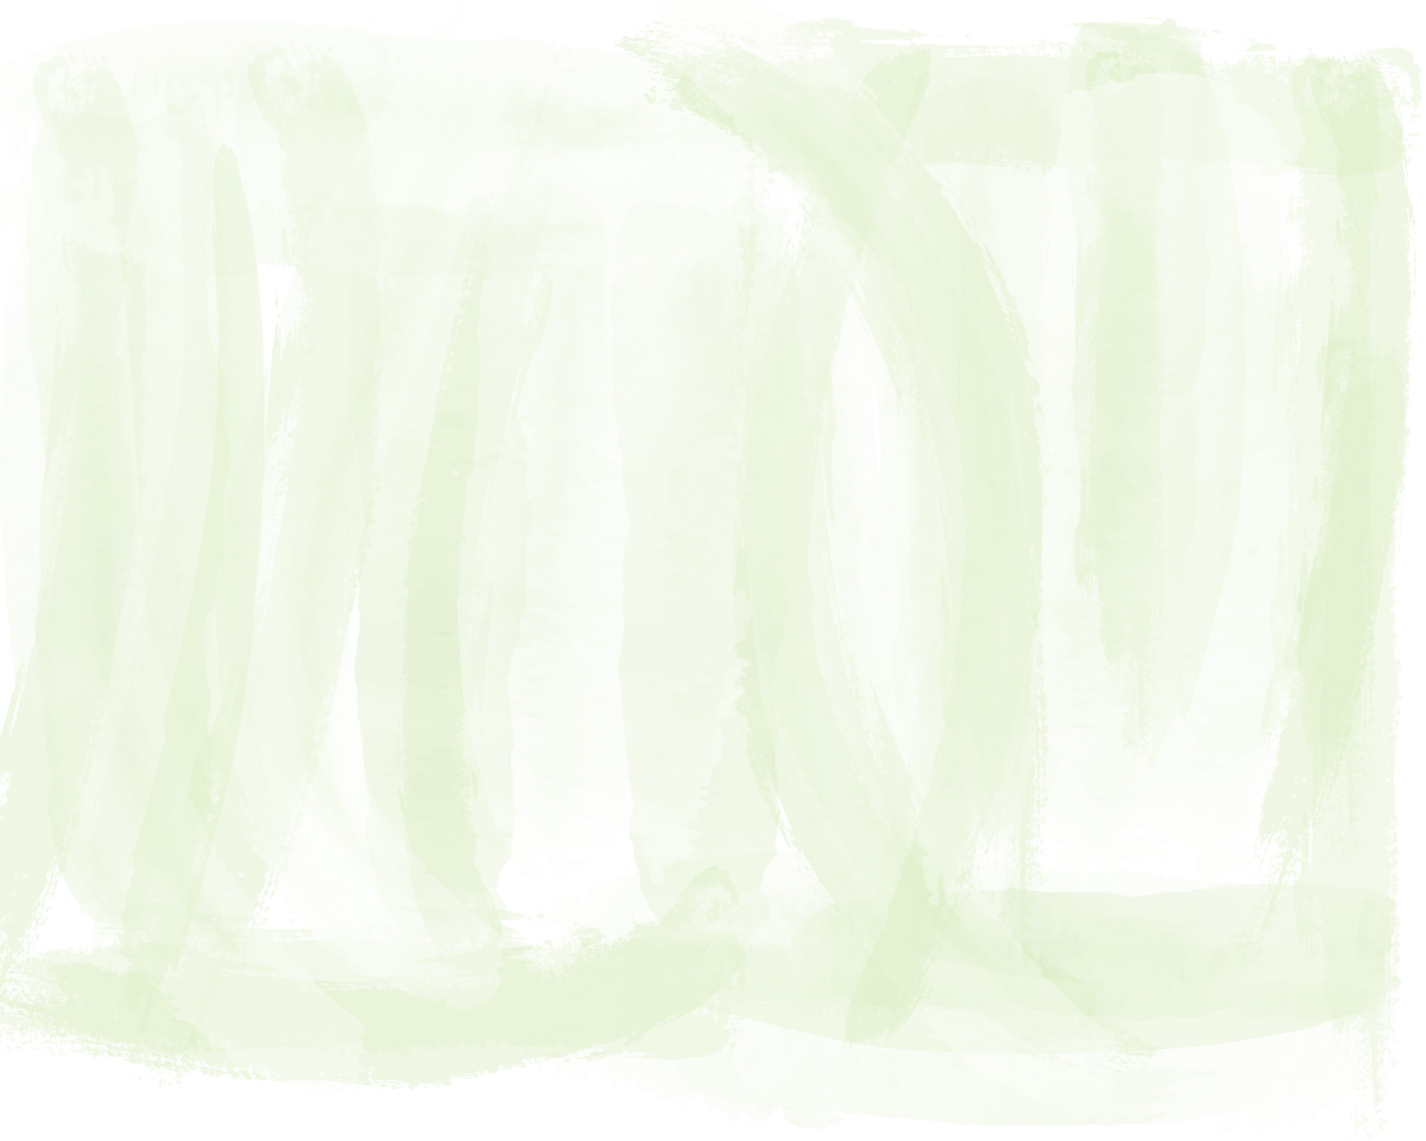 Green background image